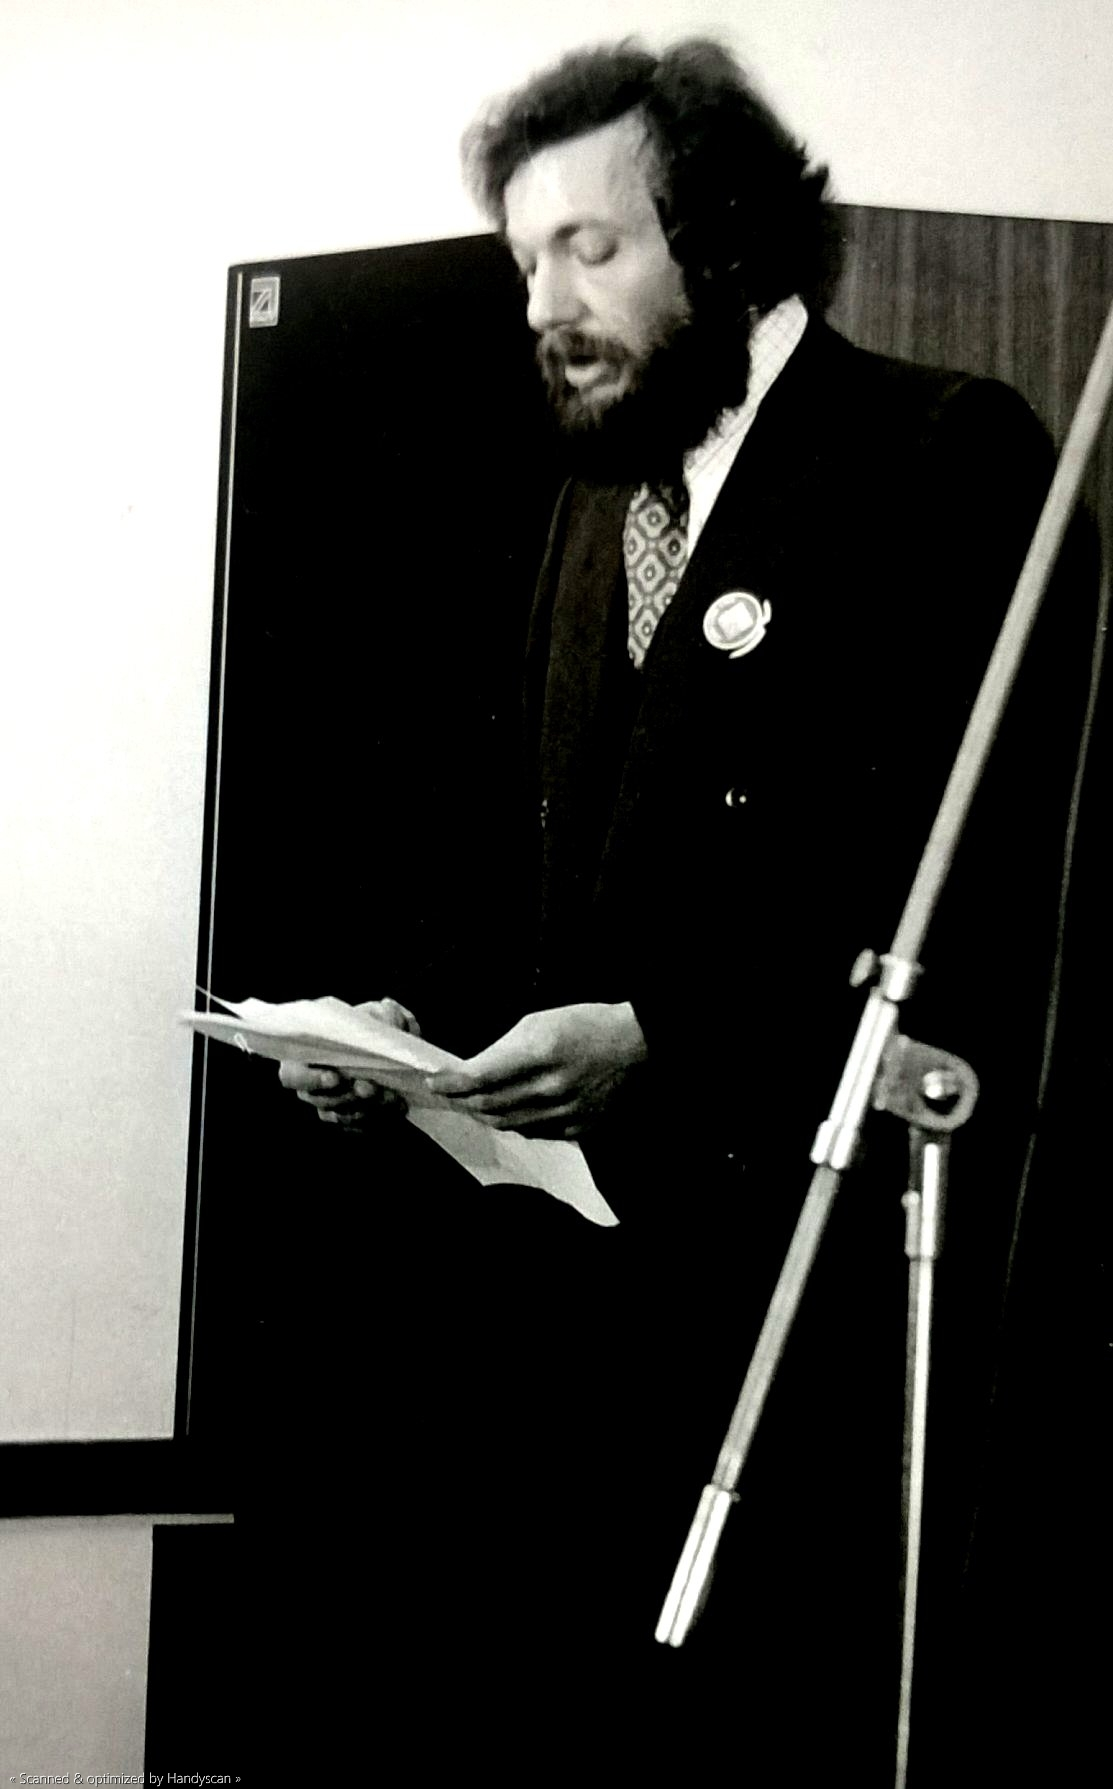 Srđan Hofman (early 1980s)